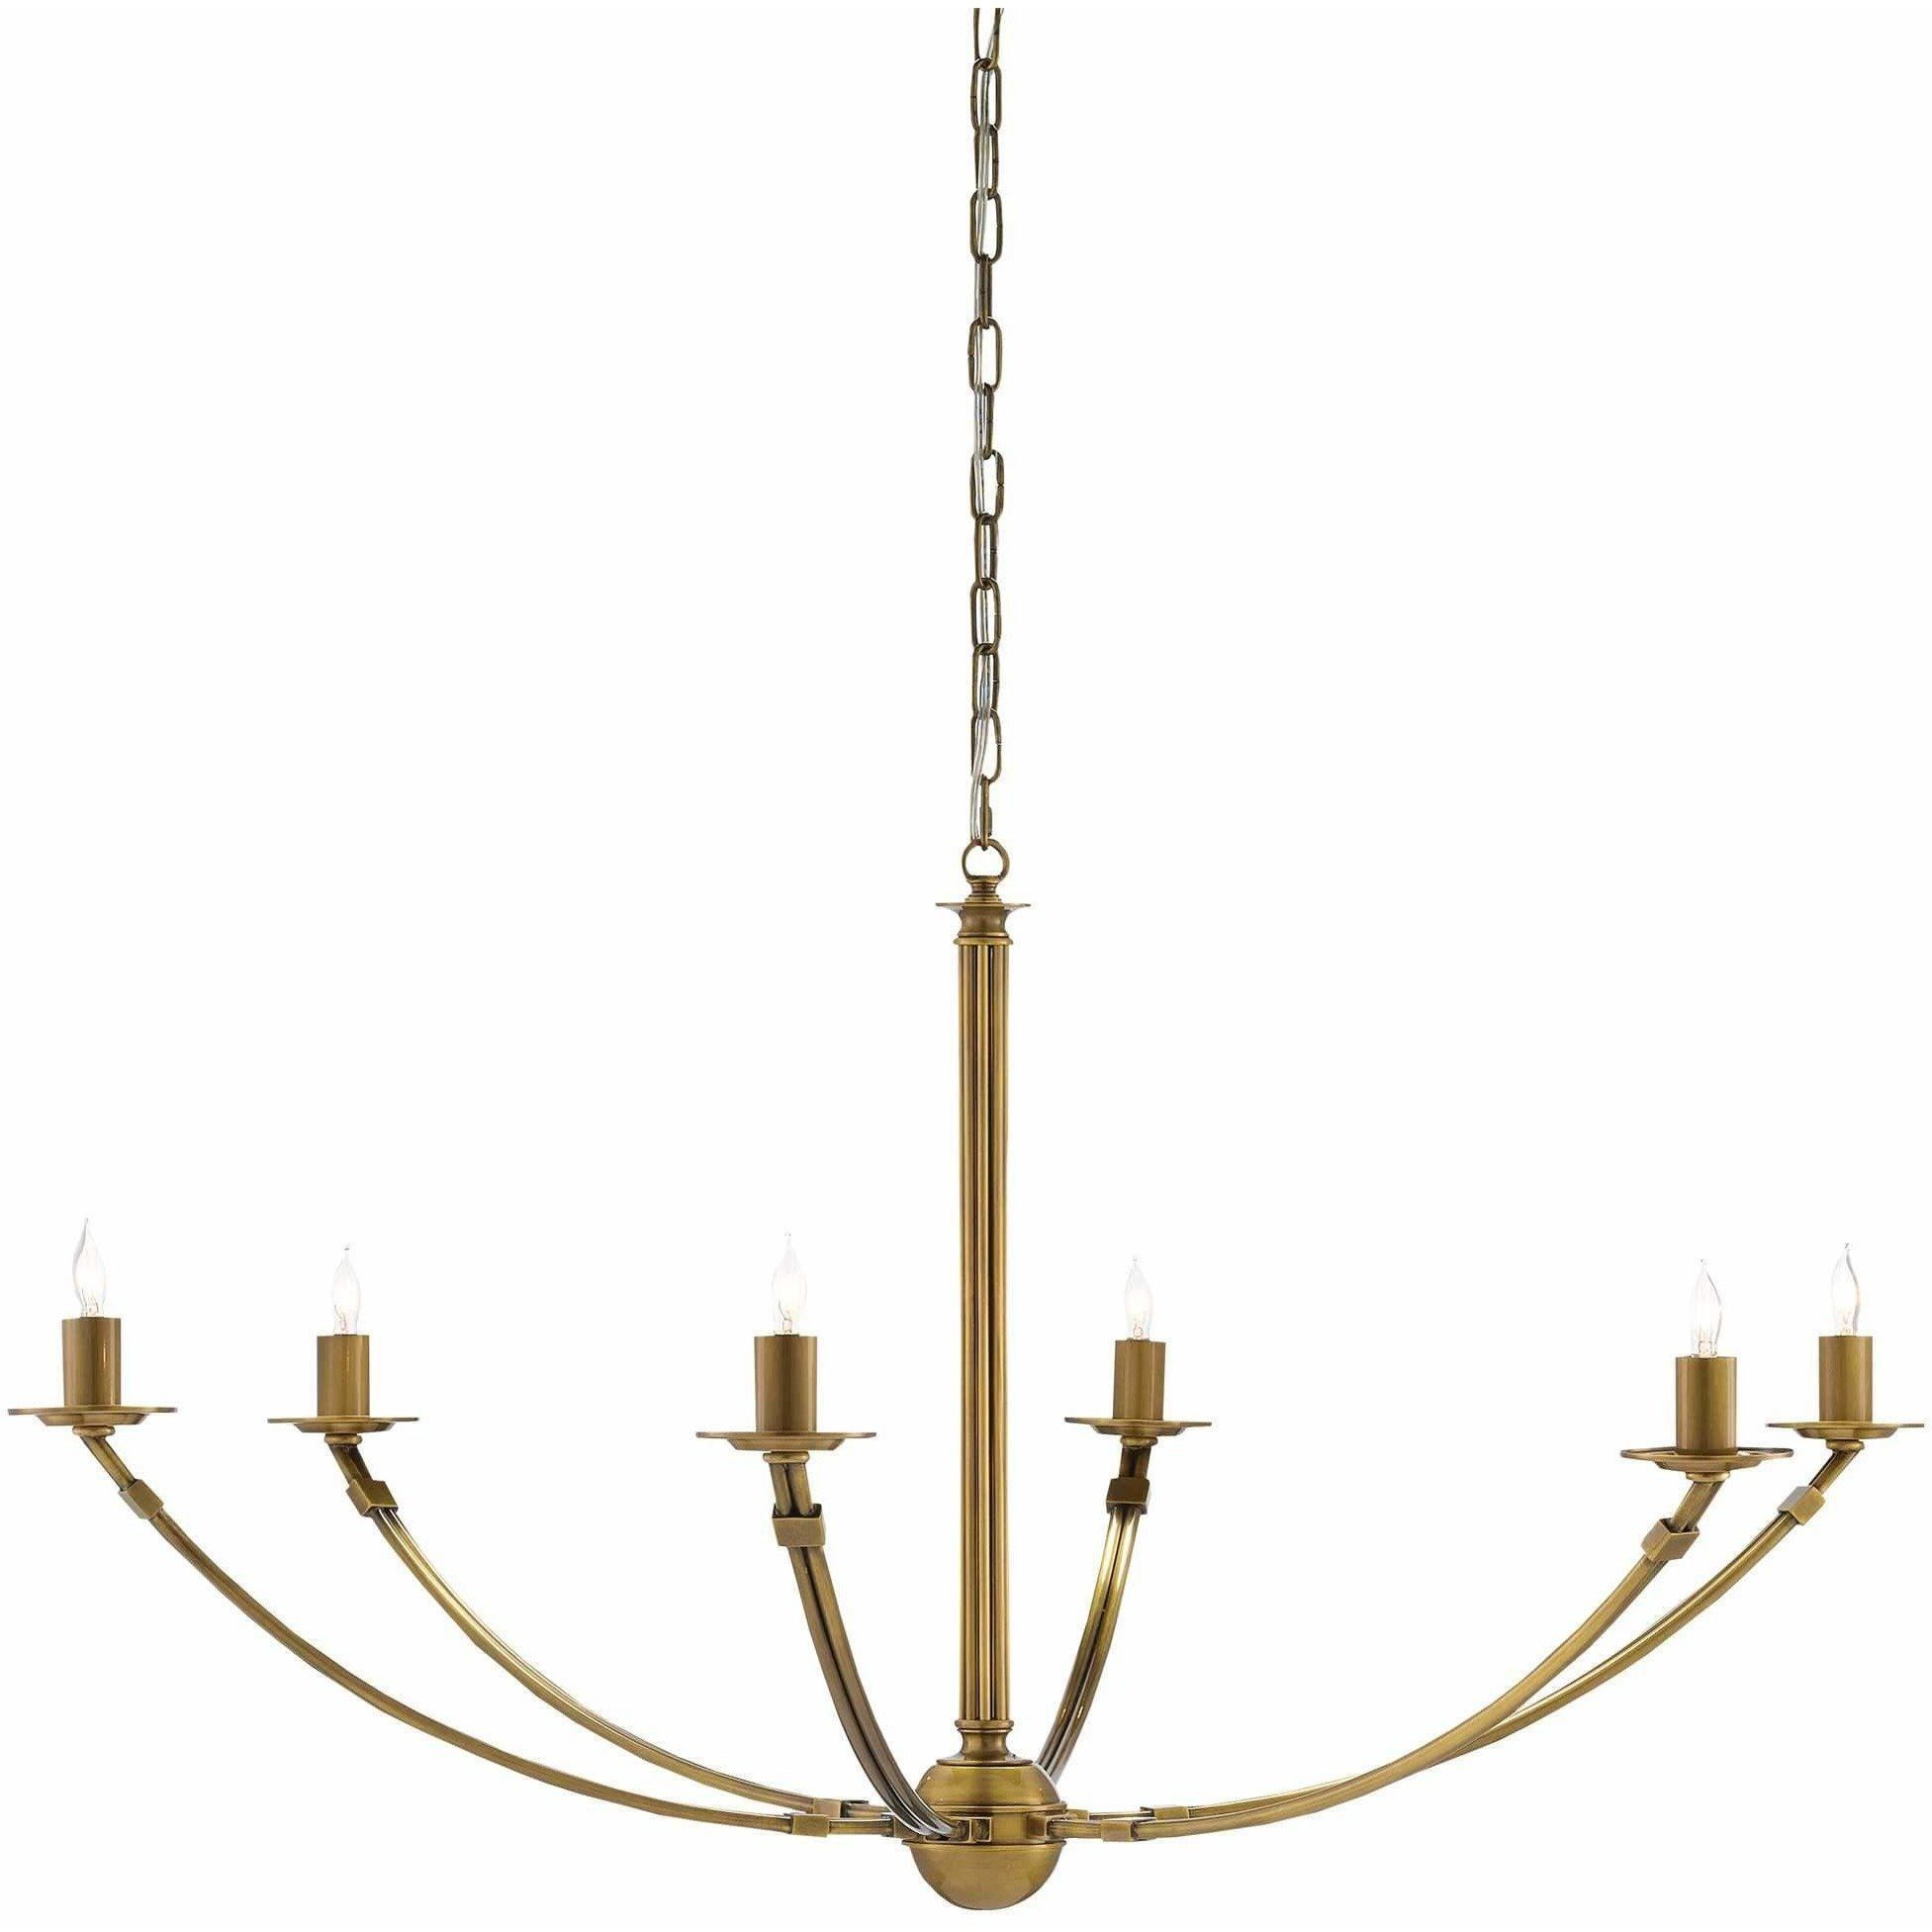 Currey And Company Lytton Chandelier 9000 0244 Candle Chandelier Chandelier For Sale Vintage Chandelier